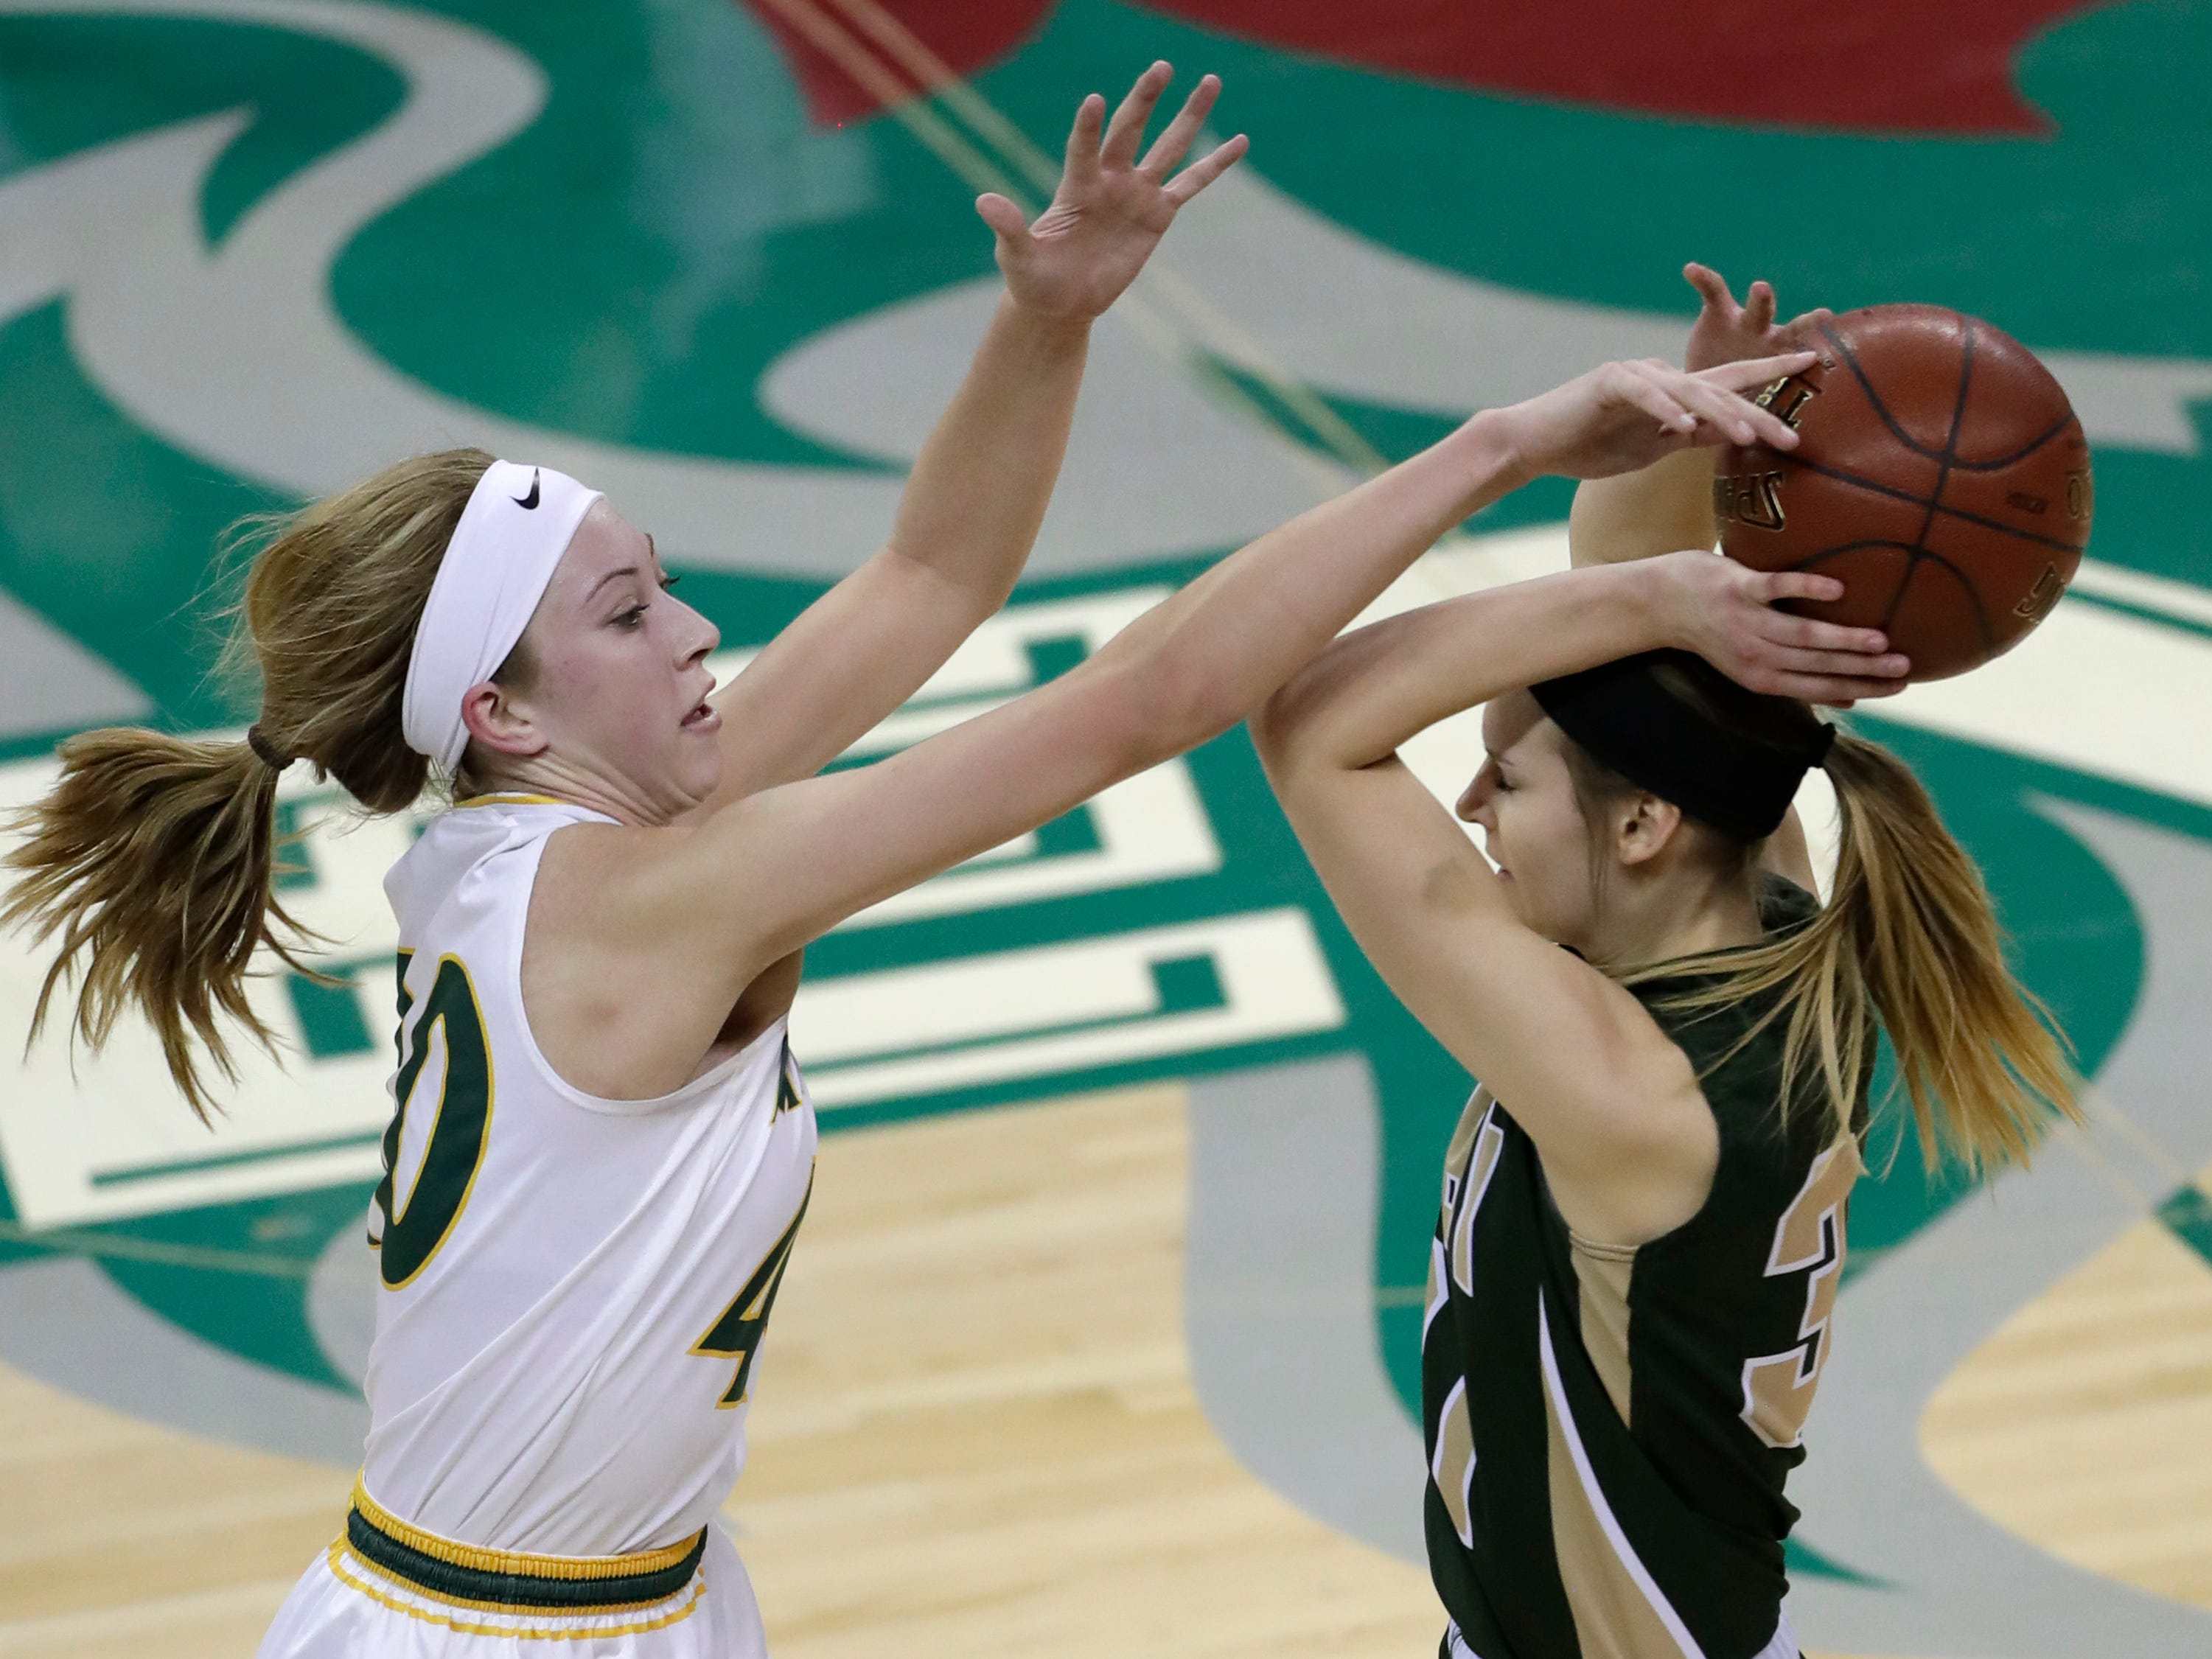 Melrose-Mindoro's Emily Herzberg (40) defends against Colby's Alyssa Underwood (31) during their Division 4 semifinal game at the WIAA girls state basketball tournament Thursday, March 7, 2019, at the Resch Center in Ashwaubenon, Wis.